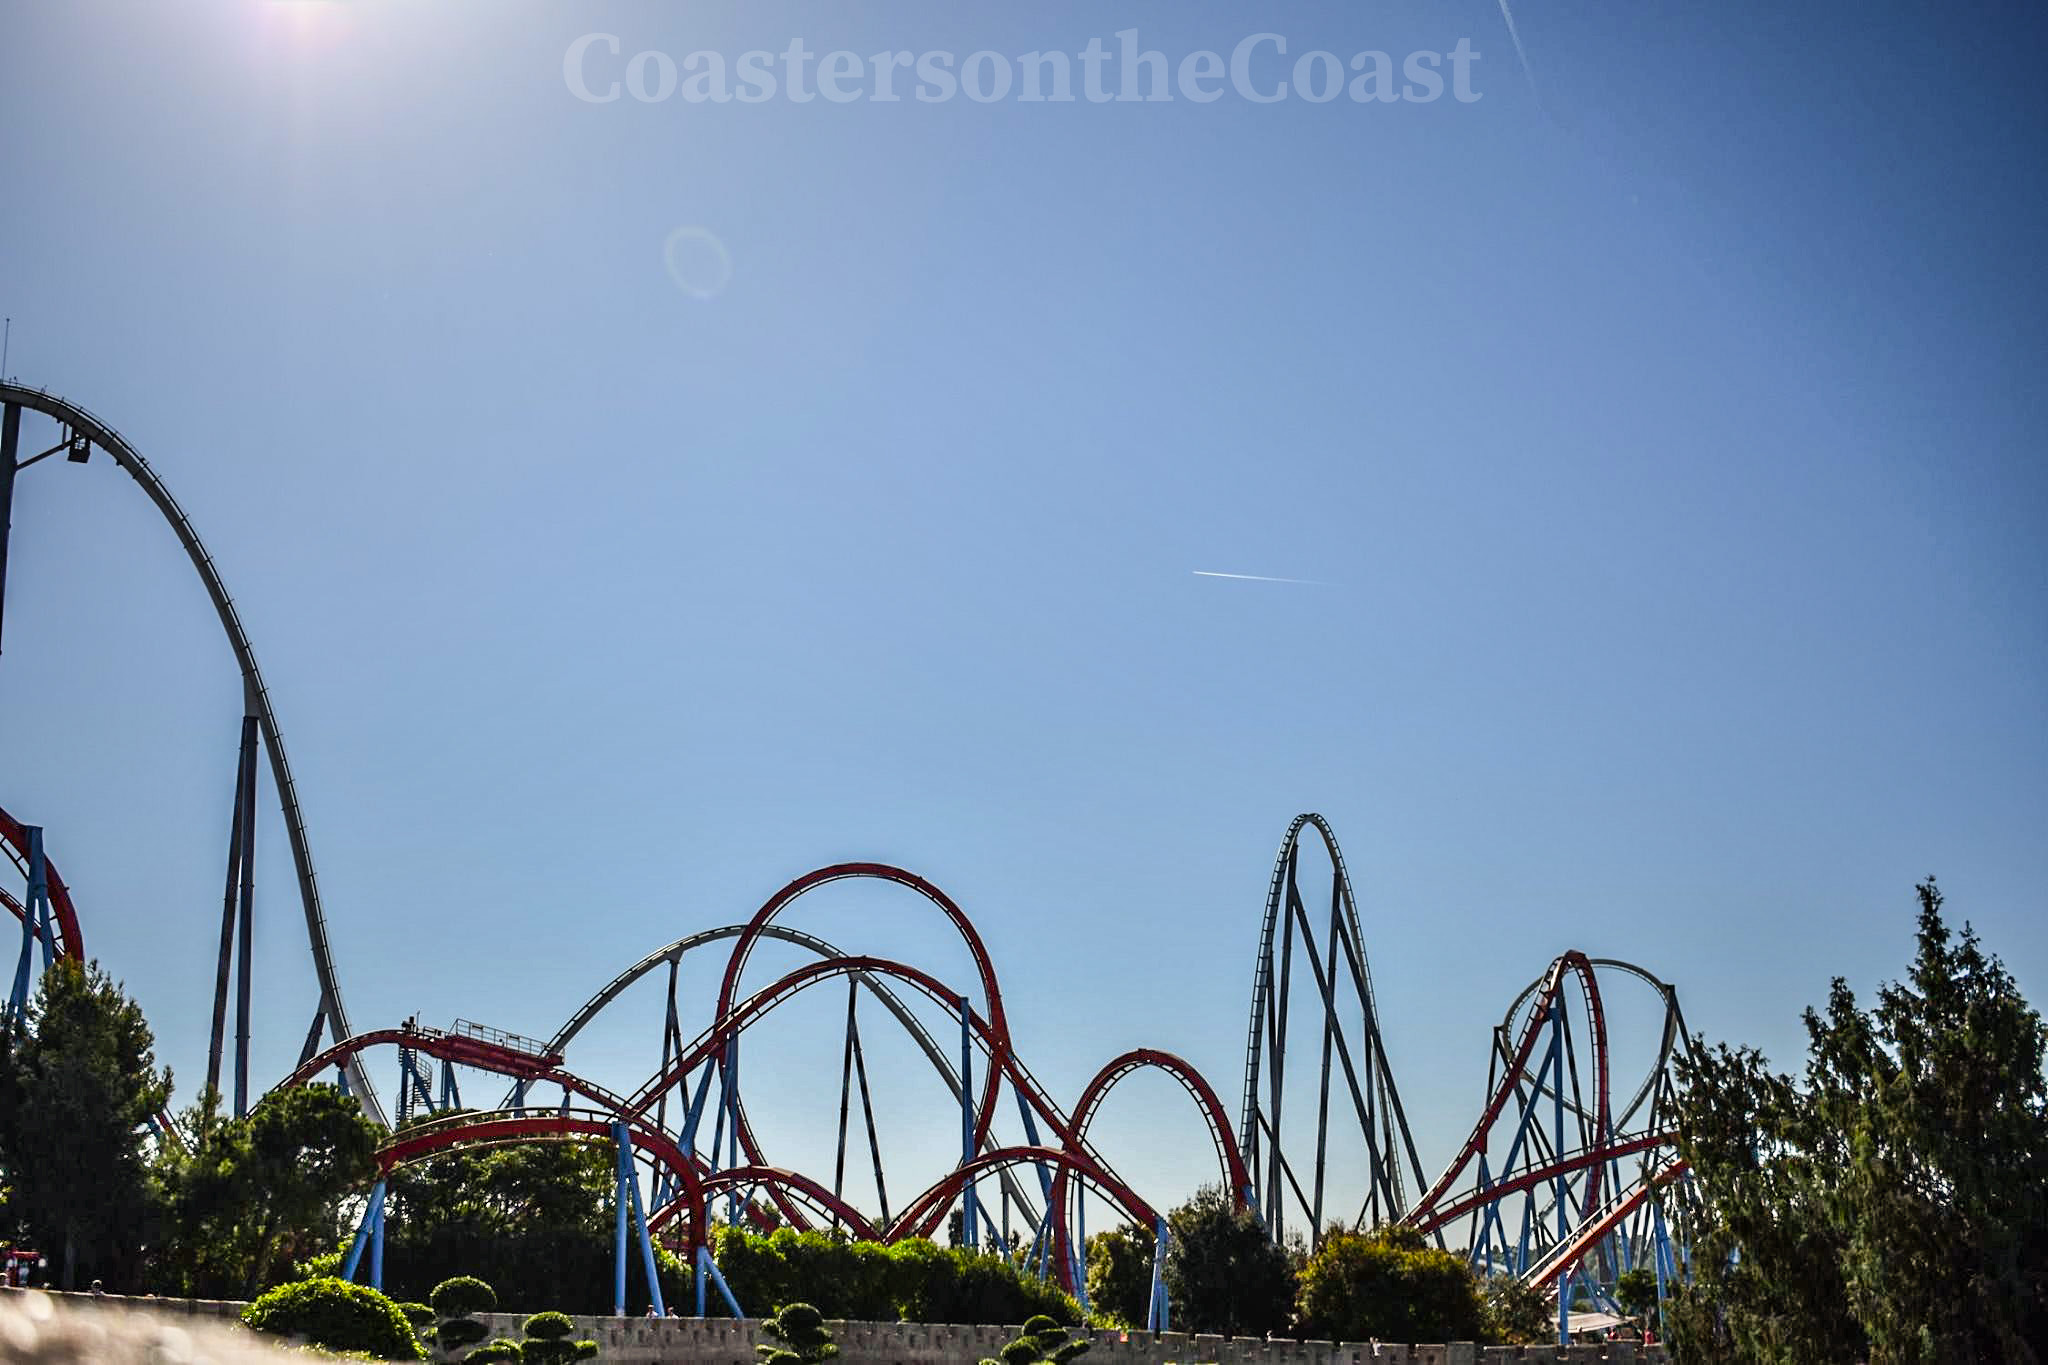 How Long Would I Need For A Trip To PortAventura World??